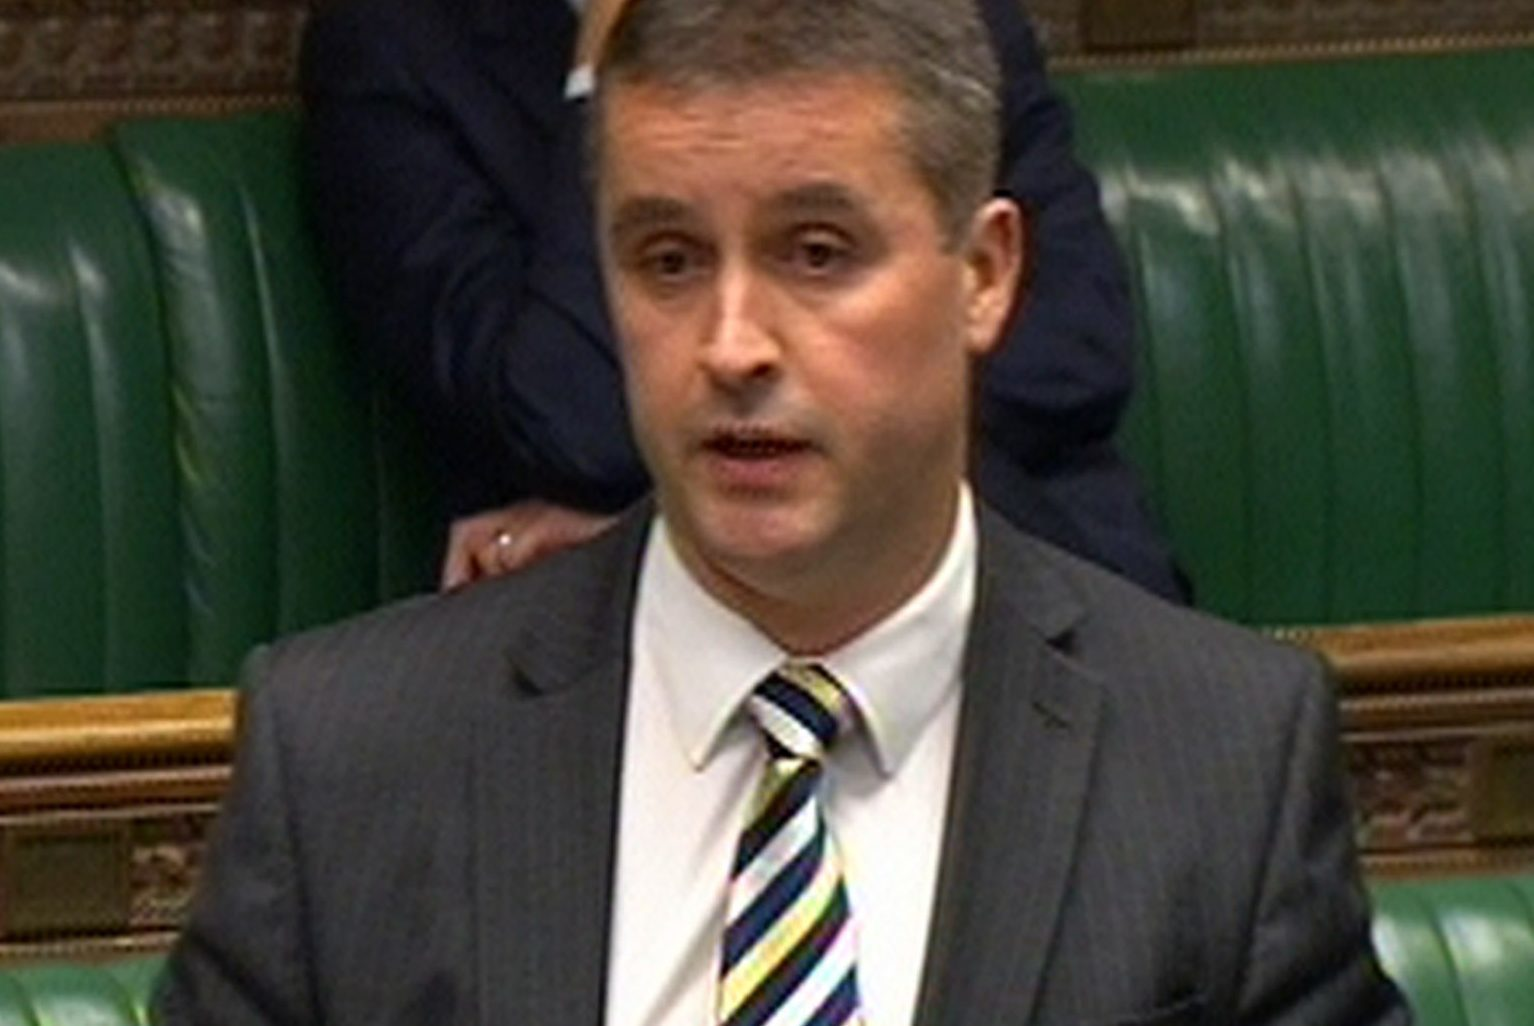 SNP MP Angus MacNeil speaks during a debate on devolution within the UK in the House of Commons, London. (PA)